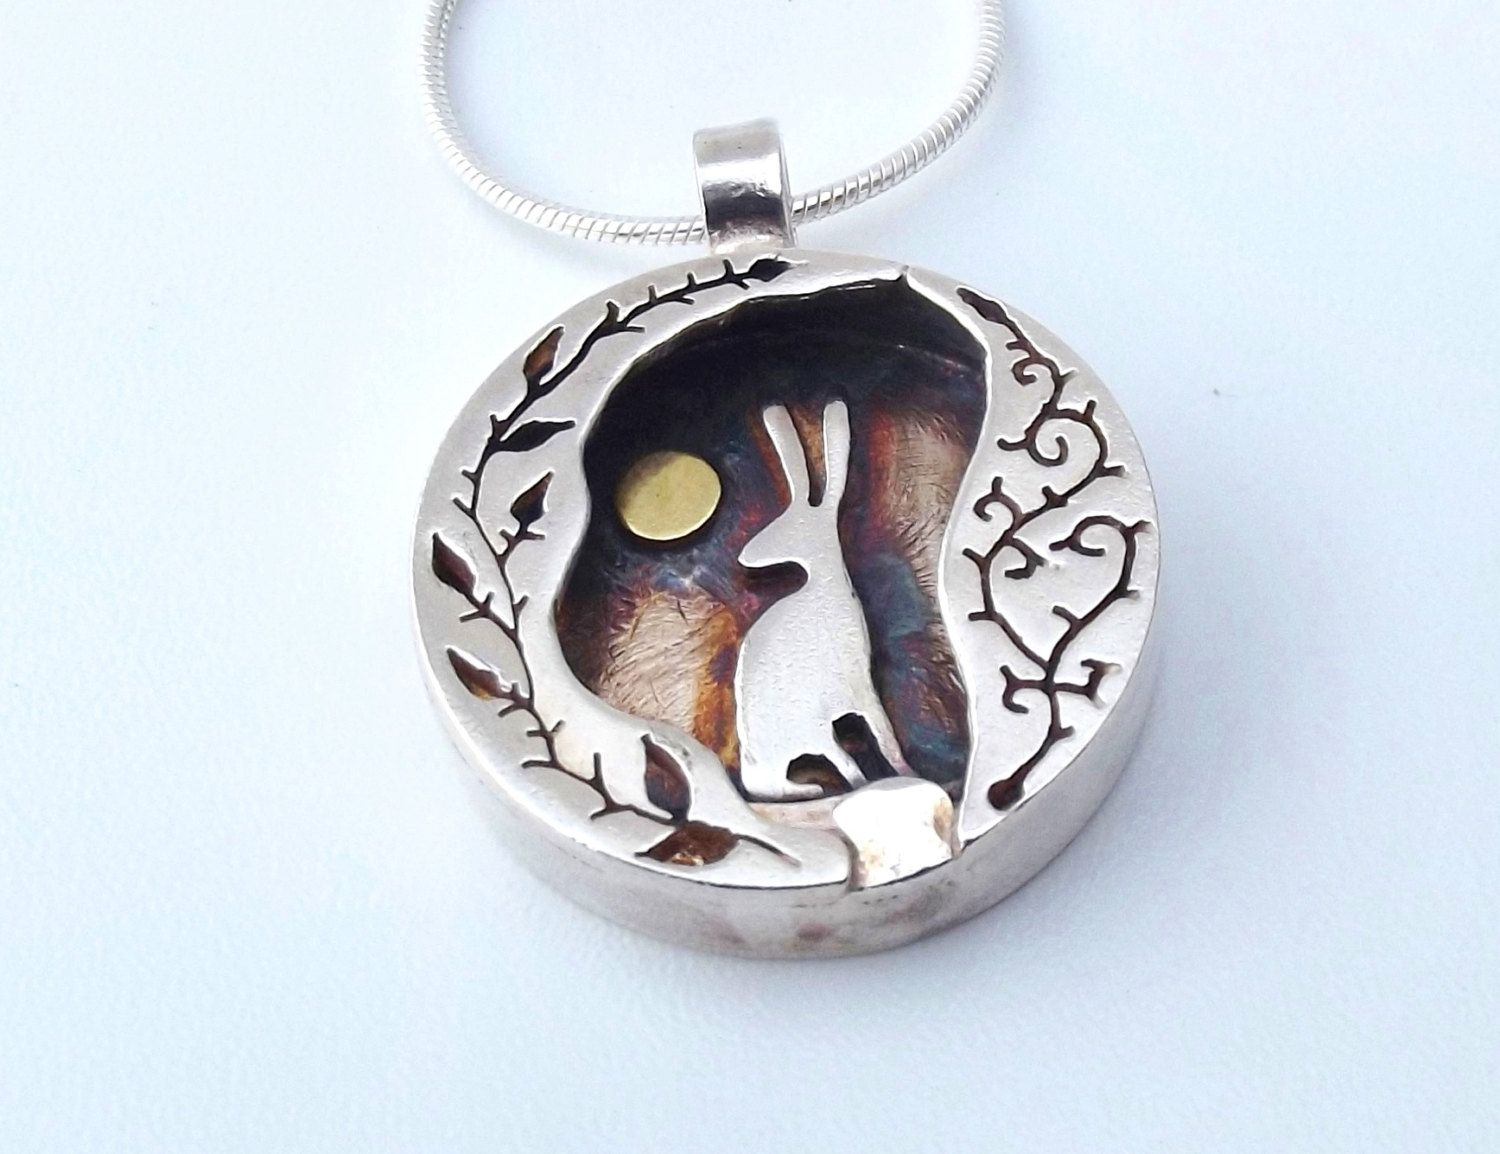 Hare necklace hare jewellery hare moon rosehip and bramble hare moon rosehips and bramble necklace a hare sitting in the moonlight in this silver and gold necklace a moon gazing hare a yellow harvest moon lights aloadofball Gallery